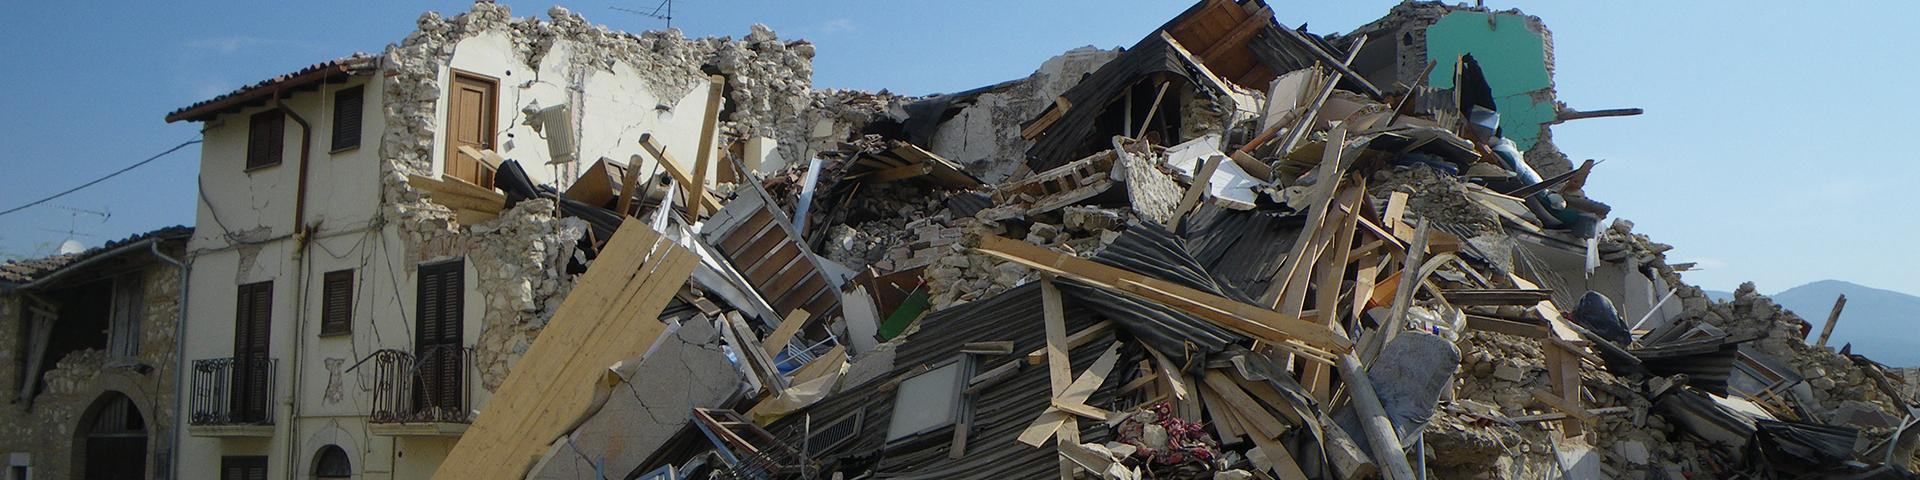 Houses destroyed by the earthquake in the Abruzzo region, Italy